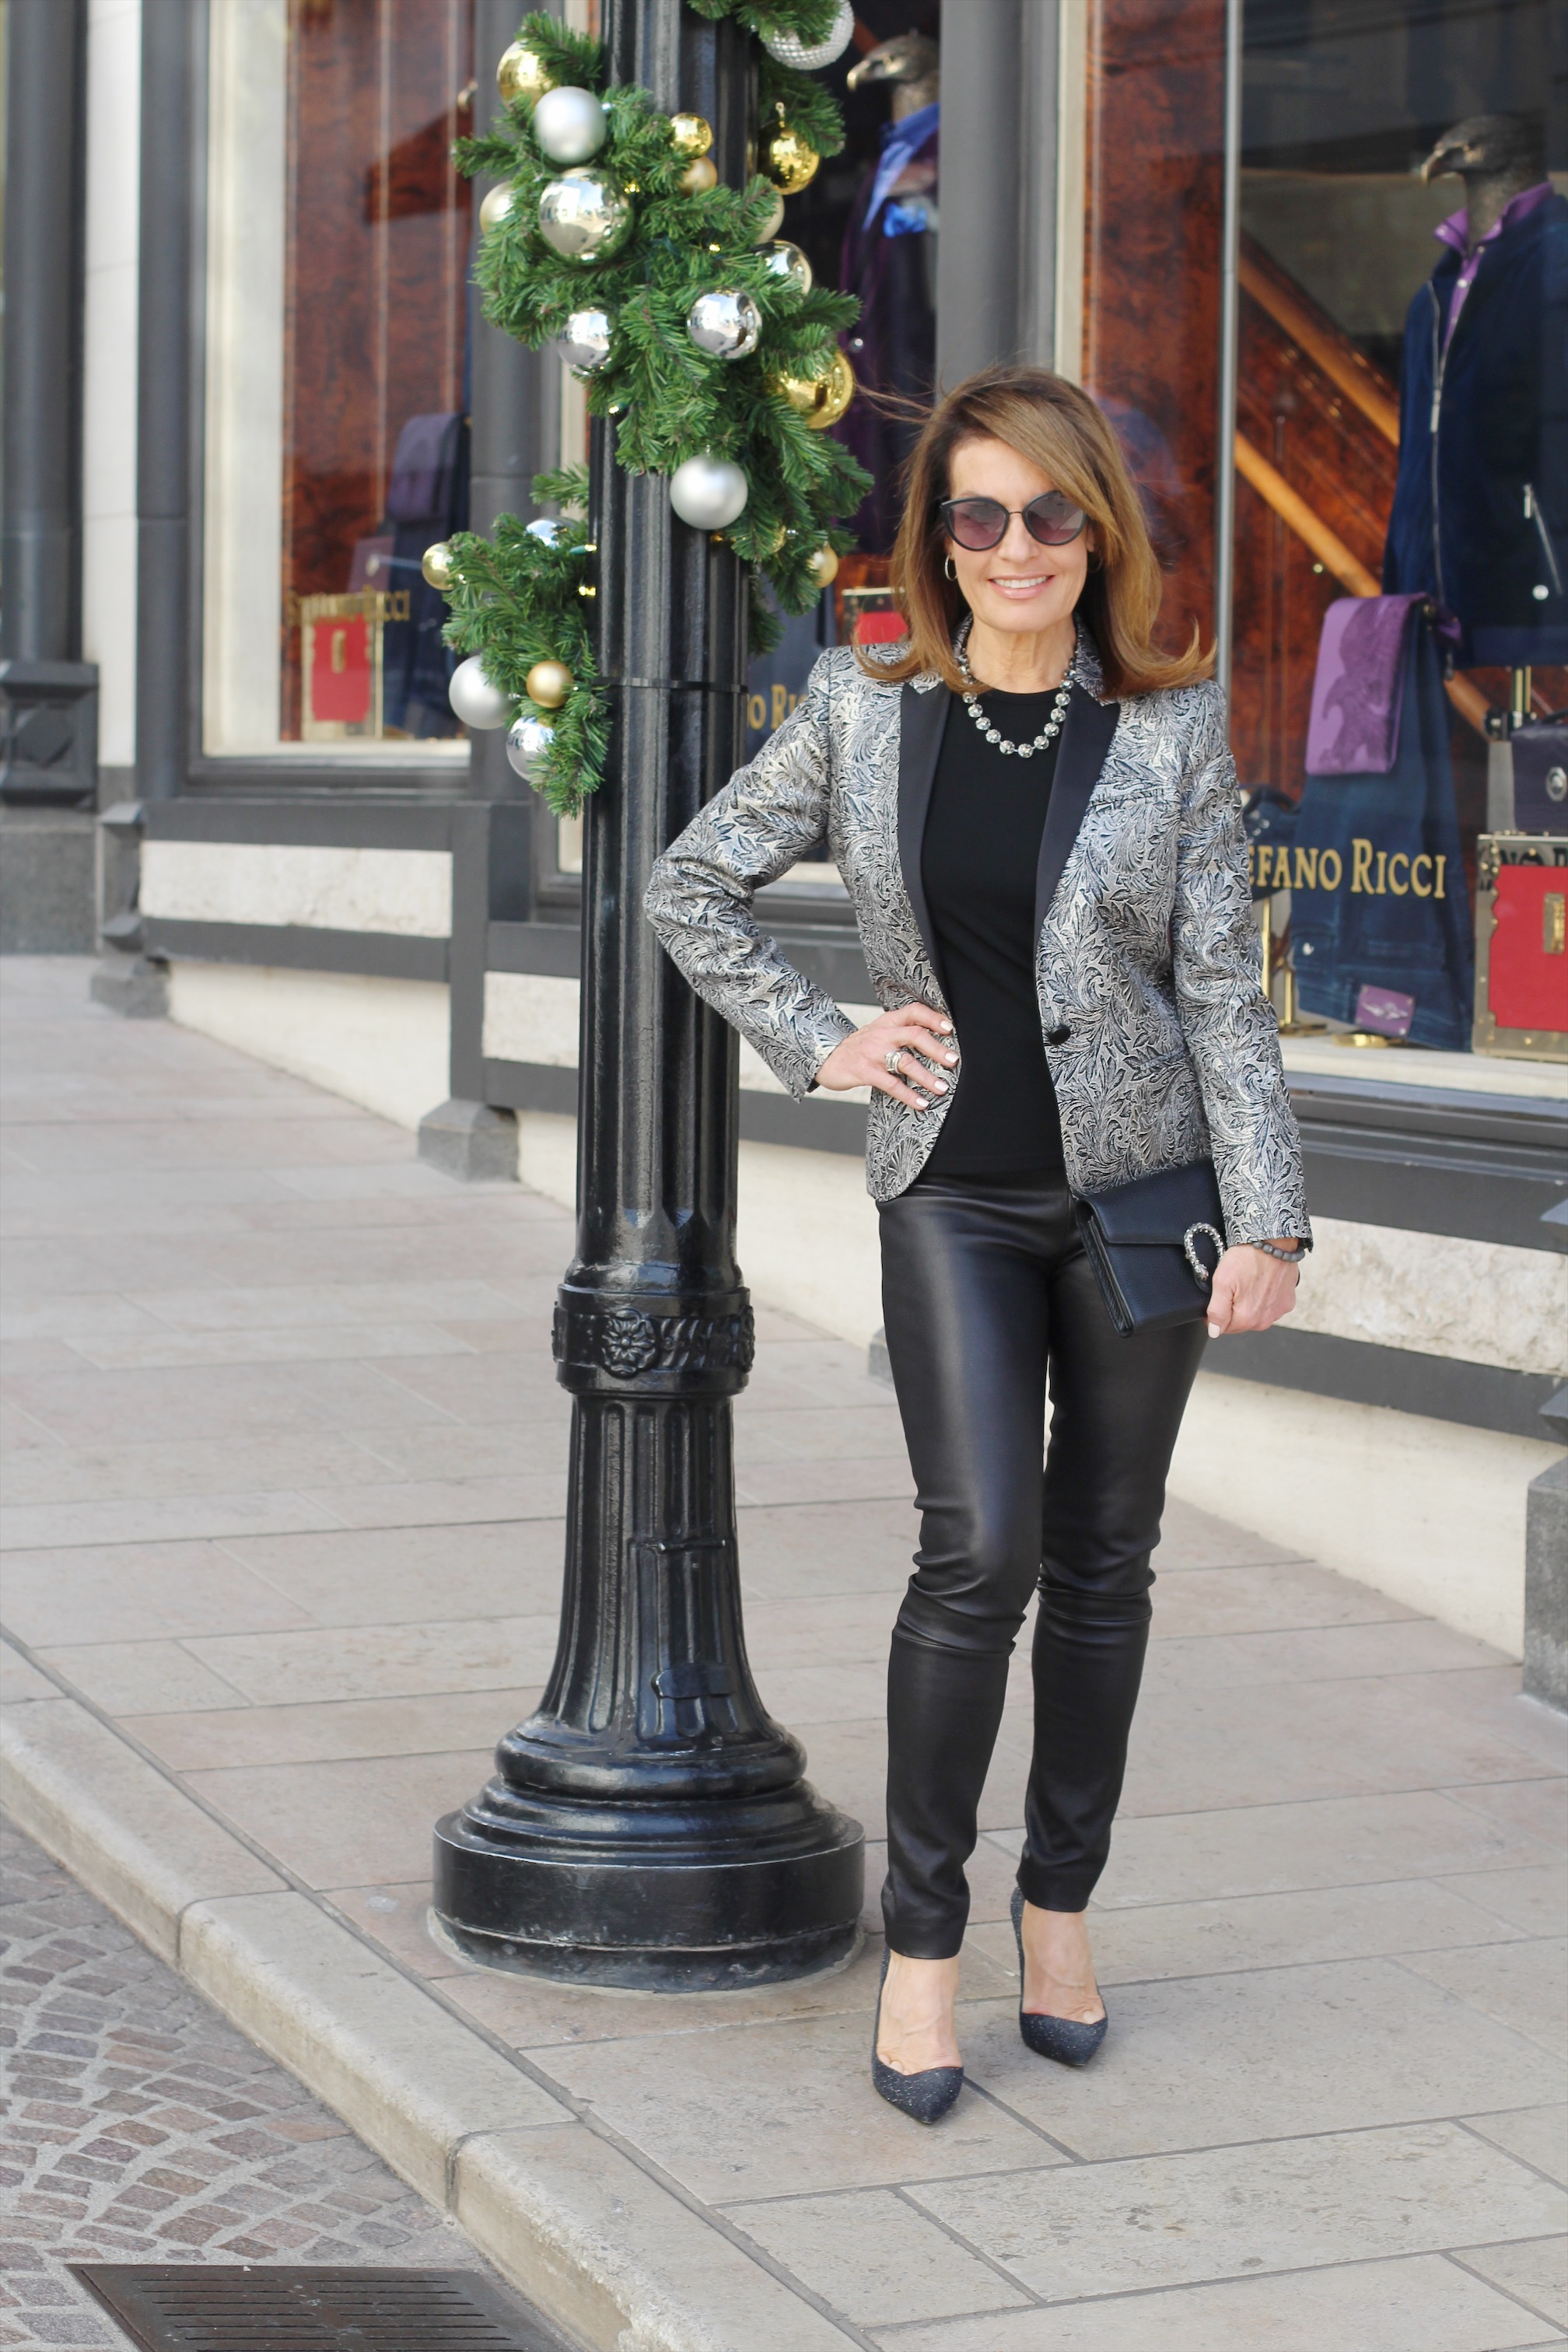 Barbara Bui jacket   ,    Worth New York top   , The Row leggings, Dior shoes,    Gucci clutch   , Cathy B Jewelry necklace, Chanel sunglasses